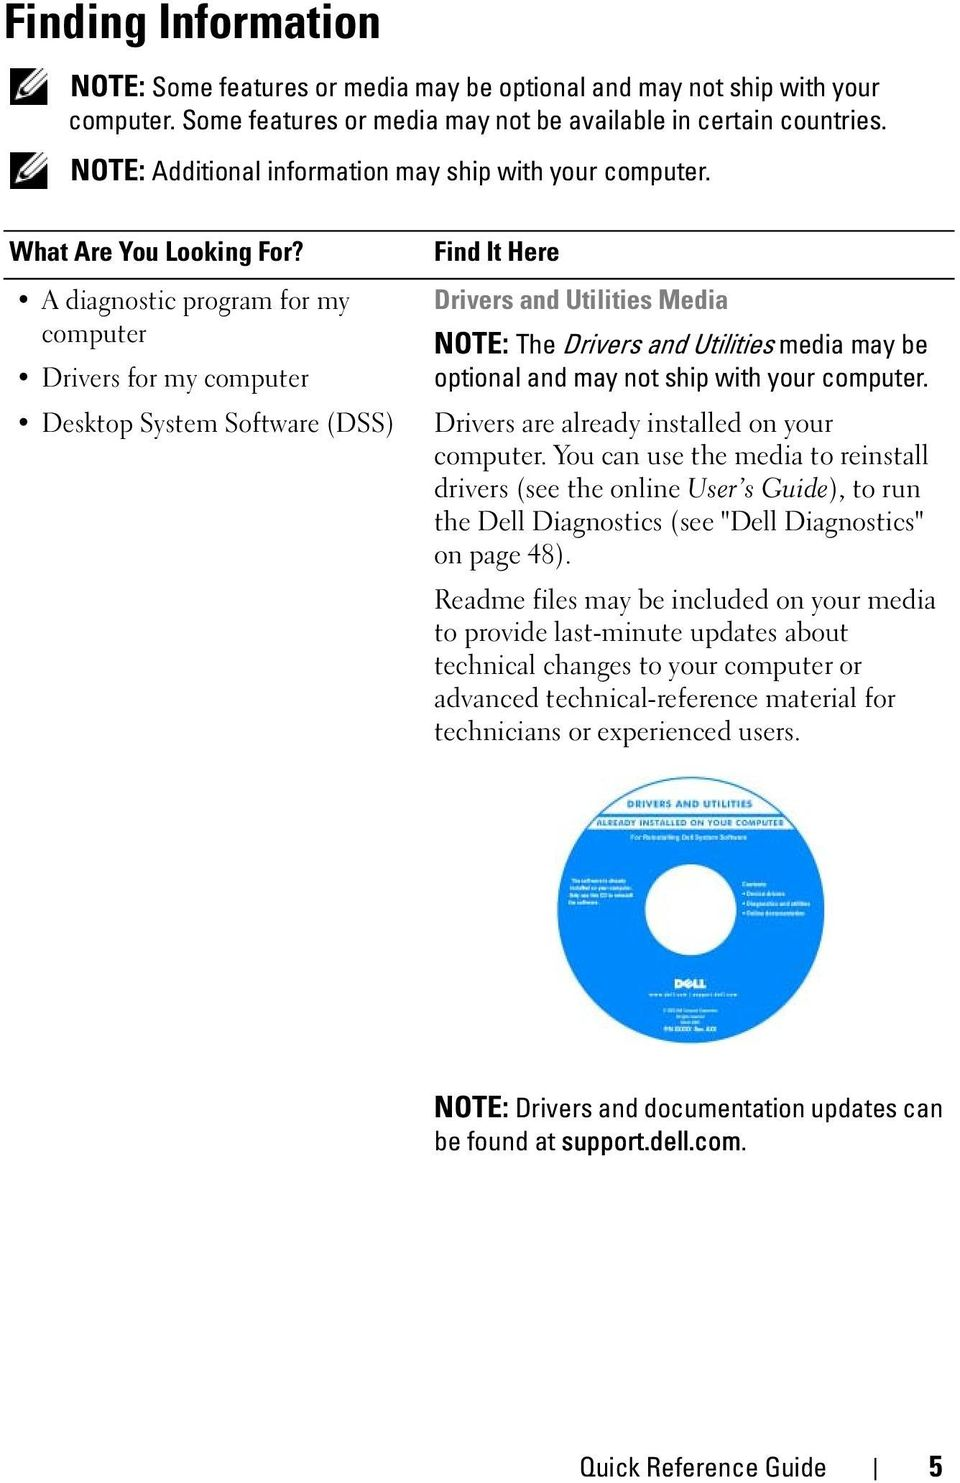 A diagnostic program for my computer Drivers for my computer Desktop System Software (DSS) Find It Here Drivers and Utilities Media NOTE: The Drivers and Utilities media may be optional and may not